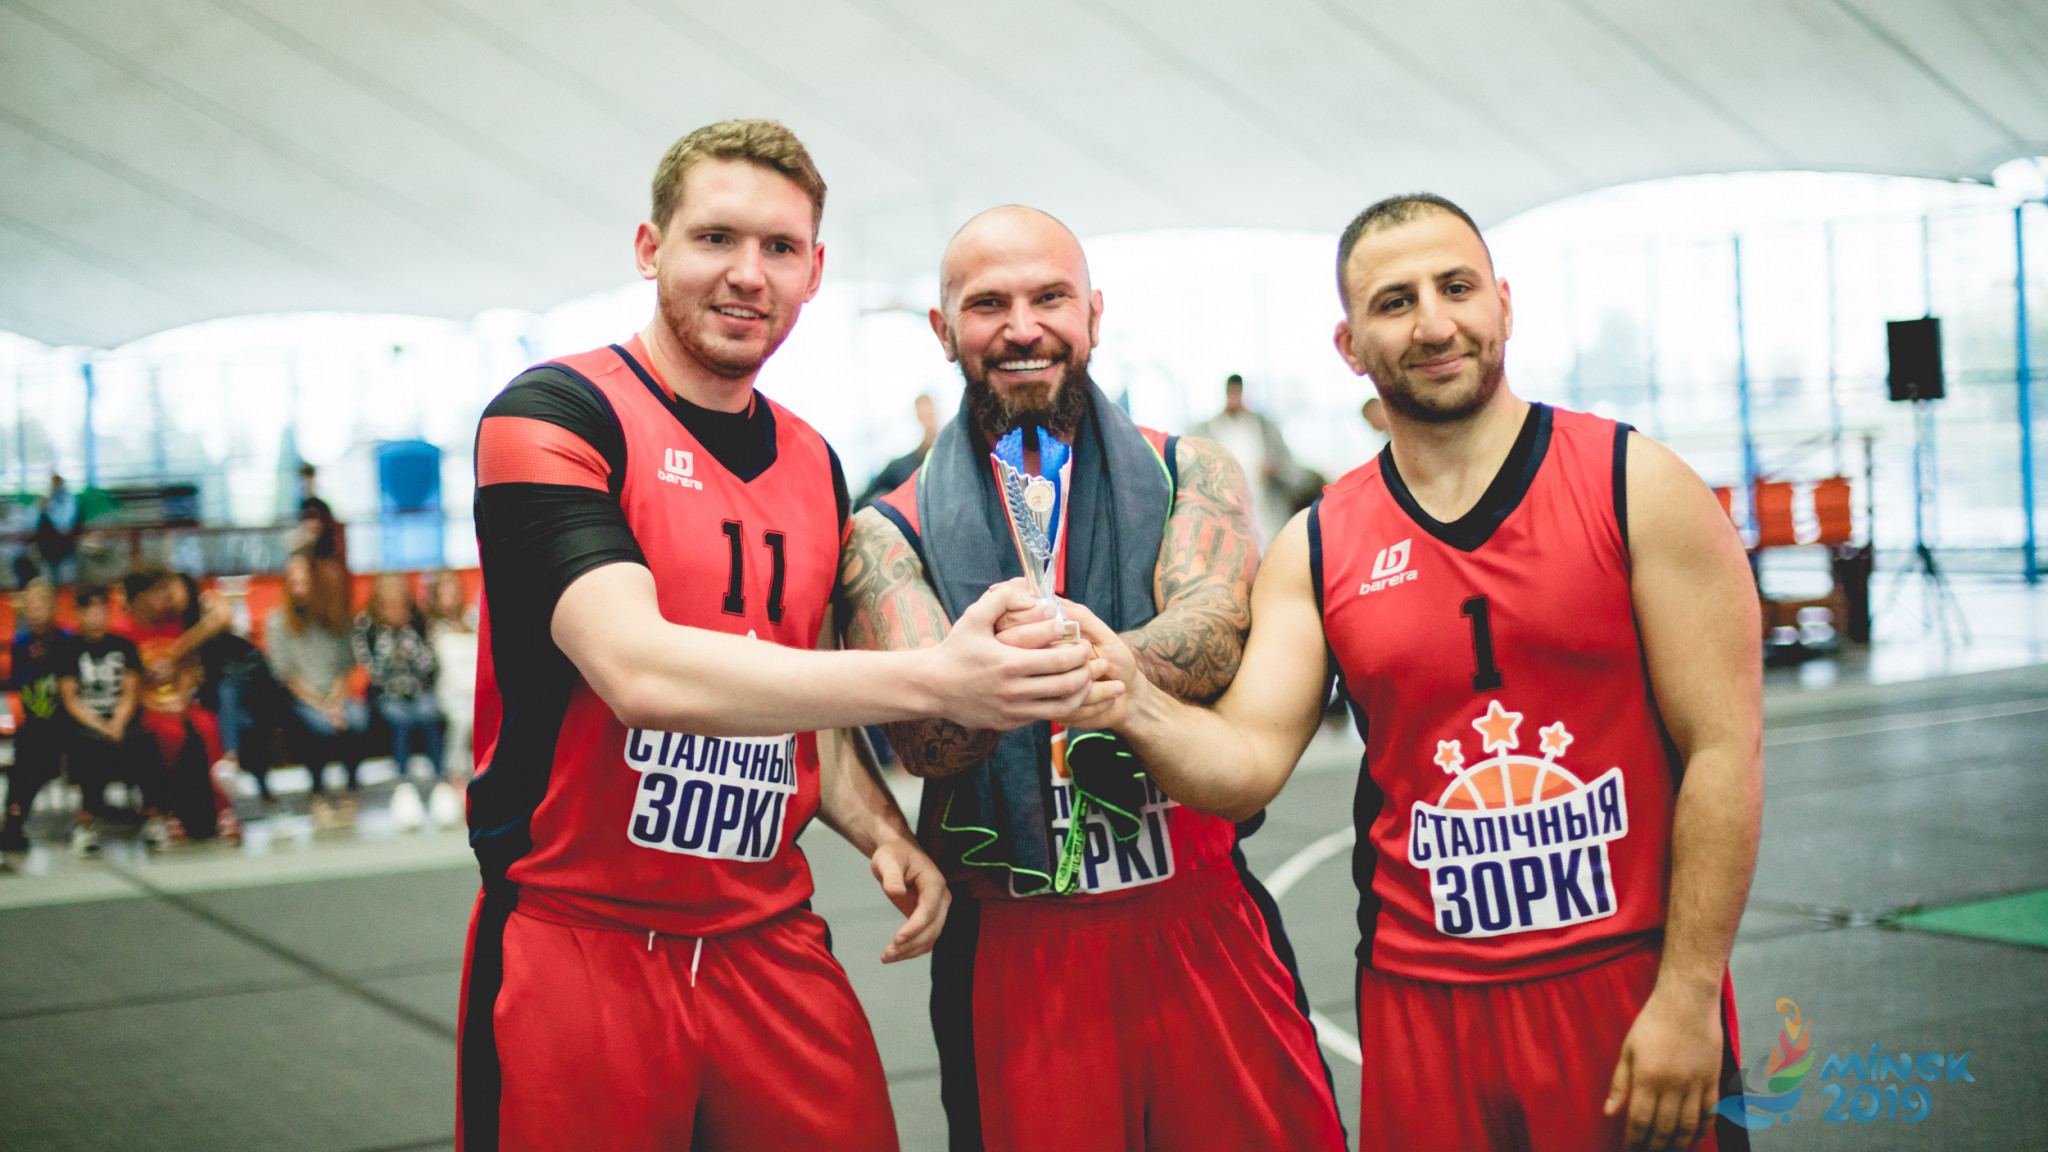 """Minsk 2019 hold 3x3 basketball tournament as """"Bright Team"""" events continue"""